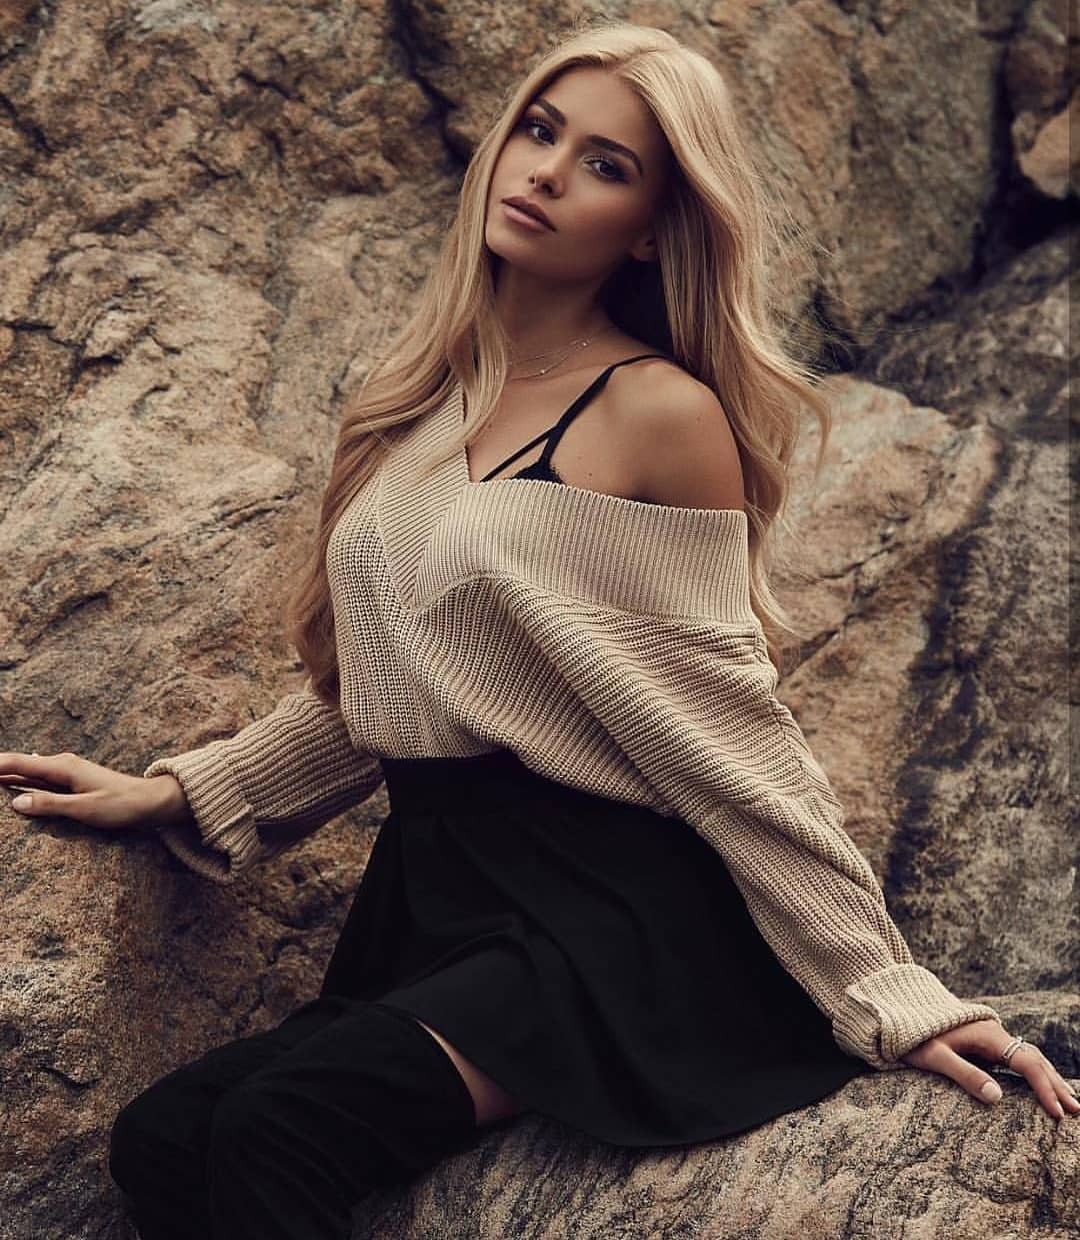 Off-Shoulder Beige Sweater With Black Flared Skirt And OTK Boots For Fall 2020